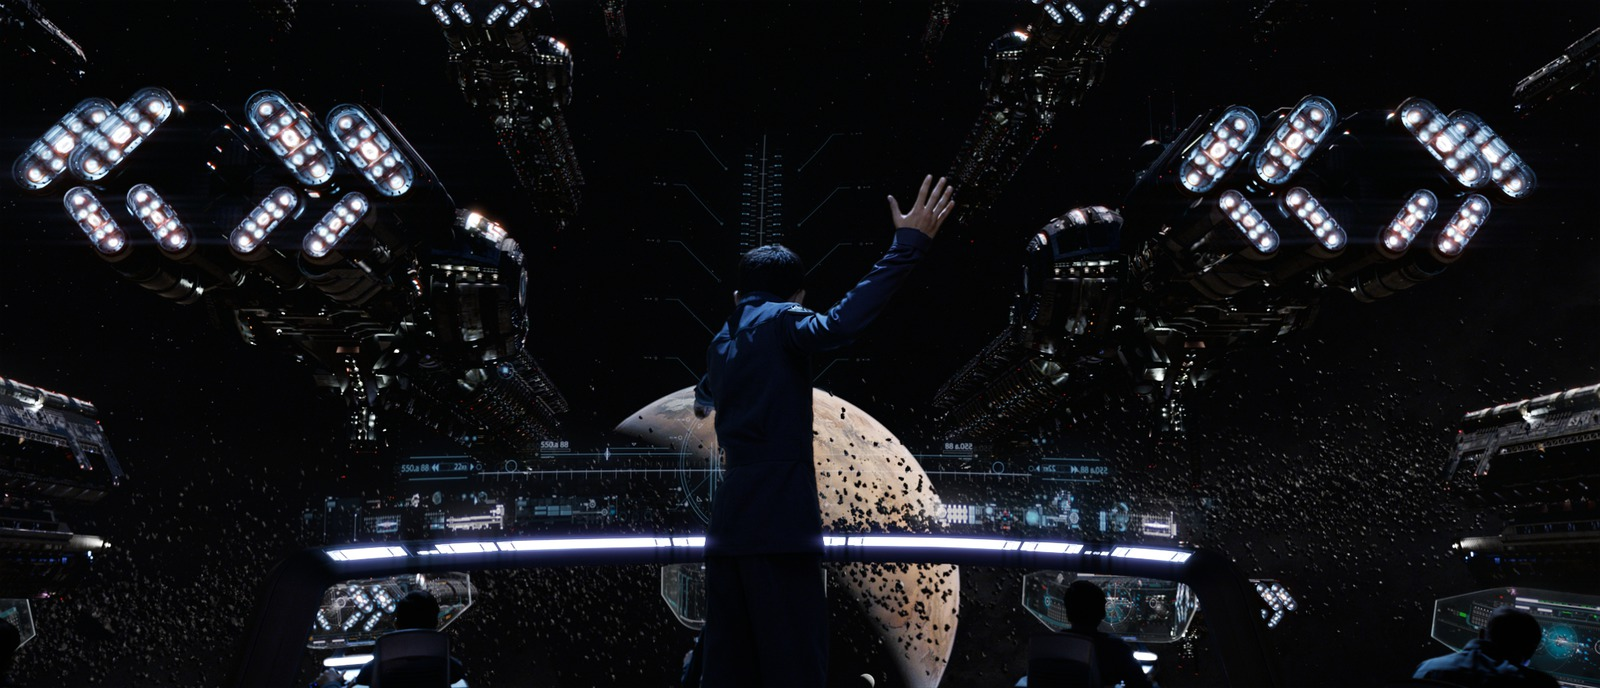 """manipulation and deception in enders game Ender's game manipulation essay the book """"ender's game"""" by orson scott card ender is manipulations and lies general graff is the one doing all the."""